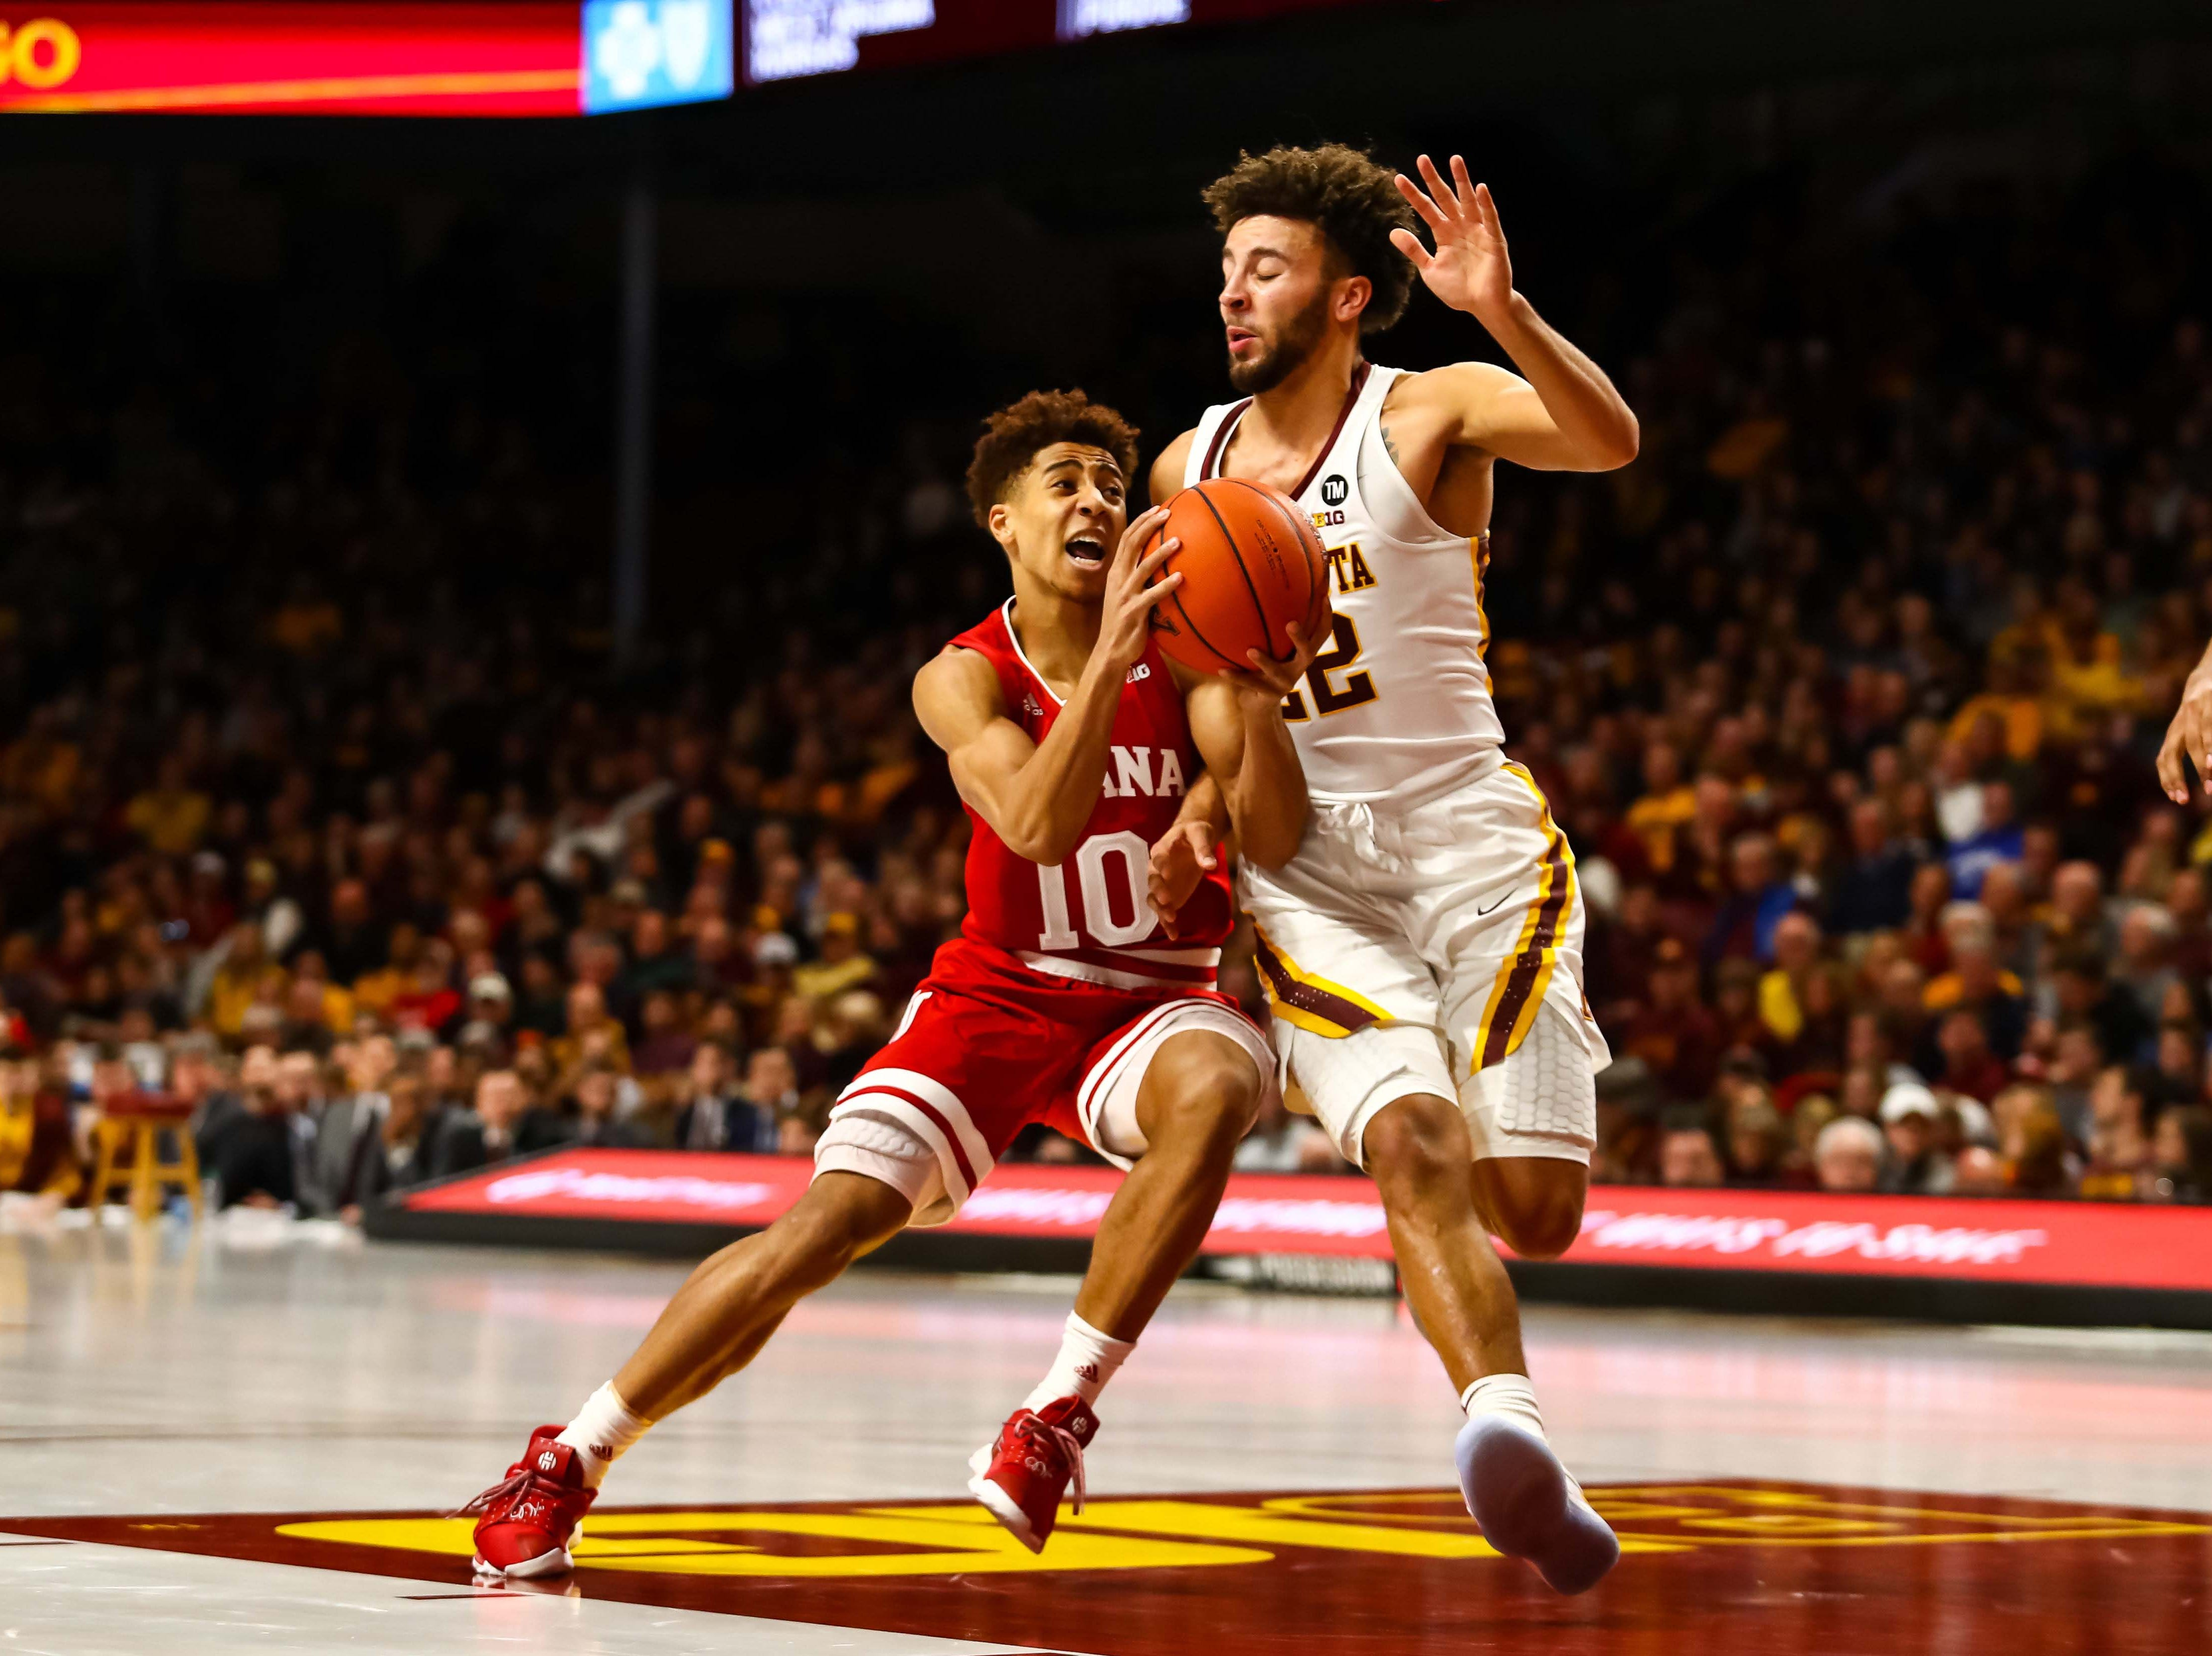 Feb 16, 2019; Minneapolis, MN, USA; Indiana Hoosiers guard Rob Phinisee (10) drives to the basket while Minnesota Golden Gophers guard Gabe Kalscheur (22) defends in the second half at Williams Arena. The Minnesota Golden Gophers defeatd the Indiana Hoosiers 84-63. Mandatory Credit: David Berding-USA TODAY Sports